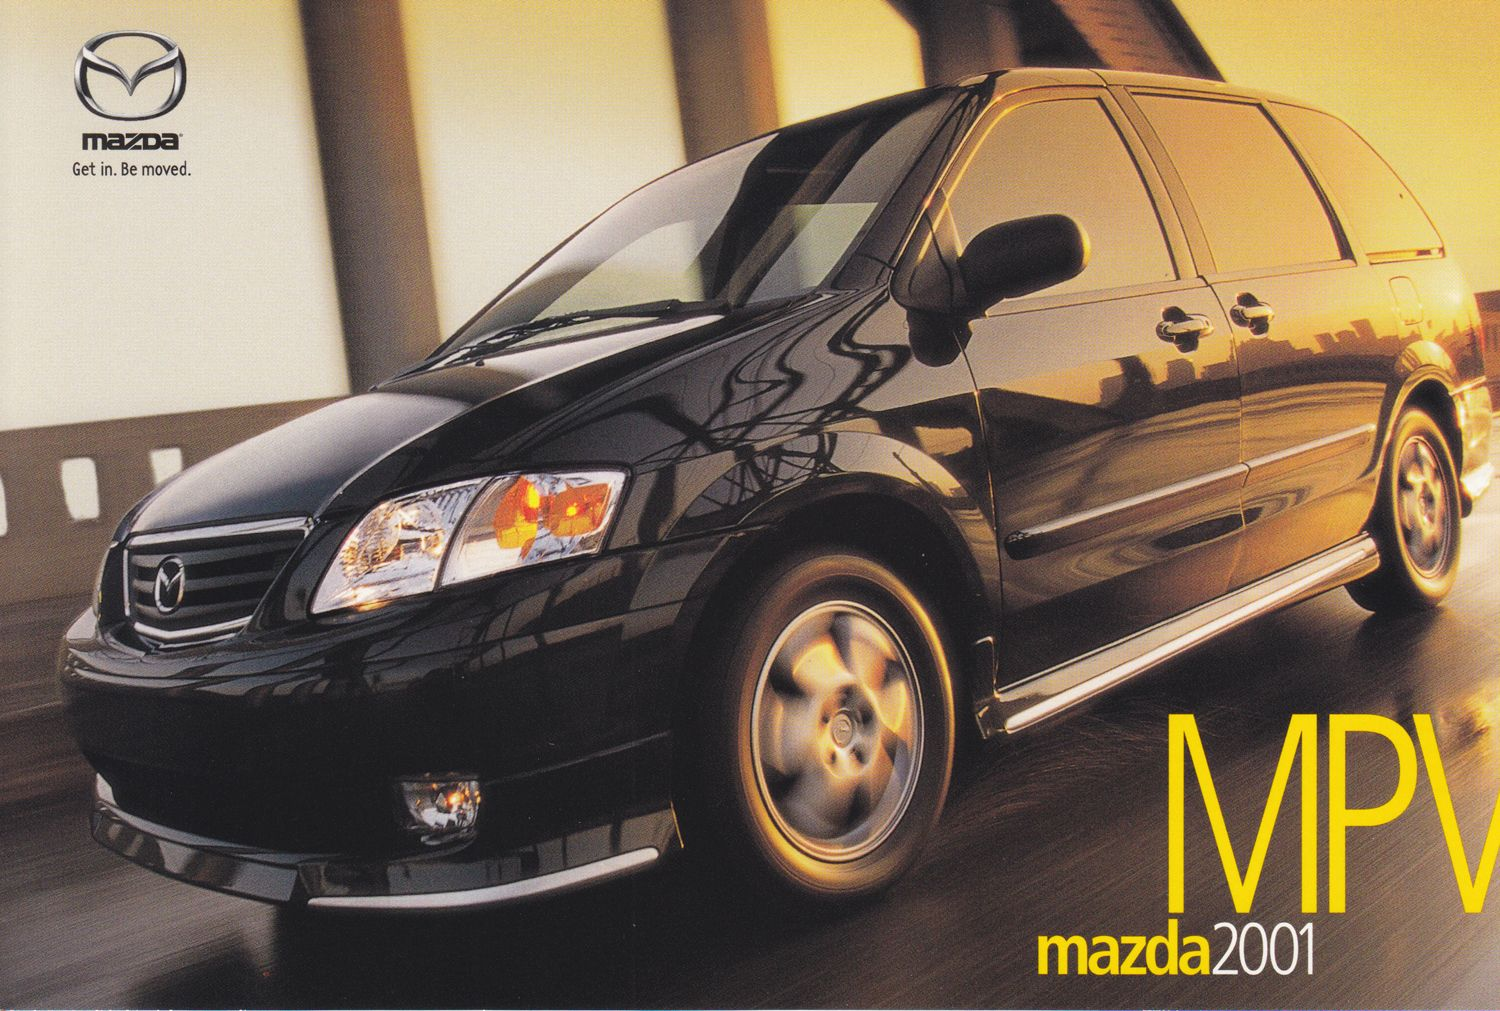 Mazda Mpv 2001 This Card Is For Sale For 1 Postage